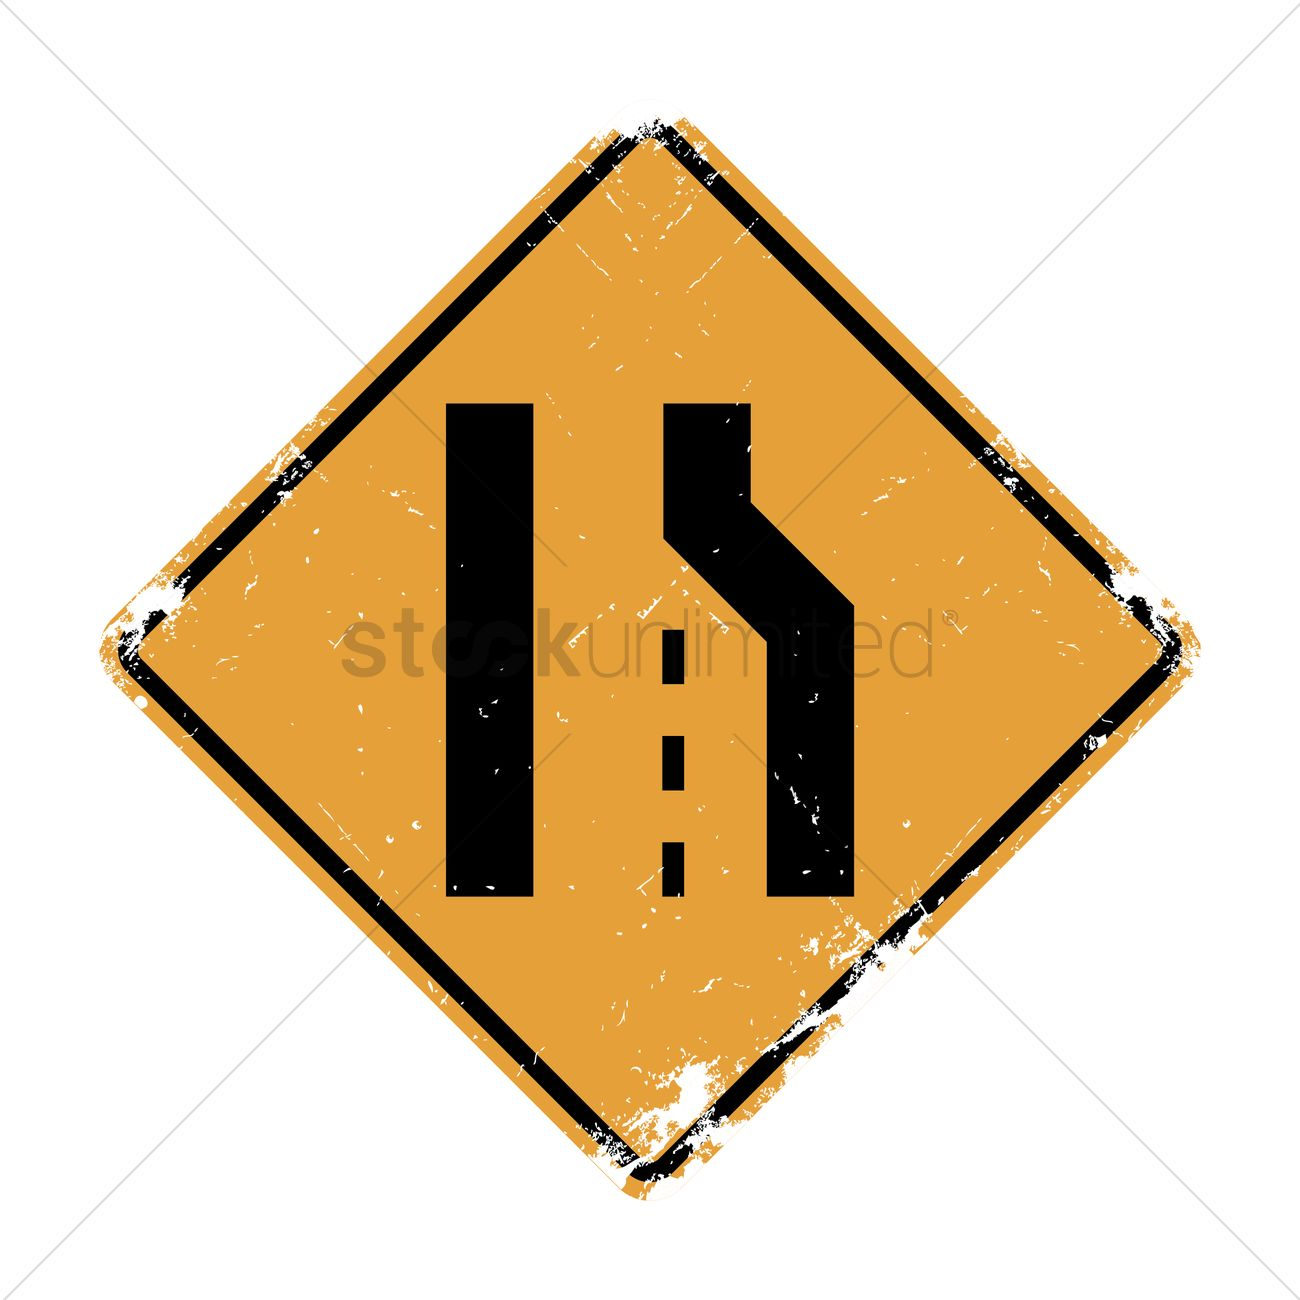 Lane Ends Merge Right 10 More! Redesign Ideas for the